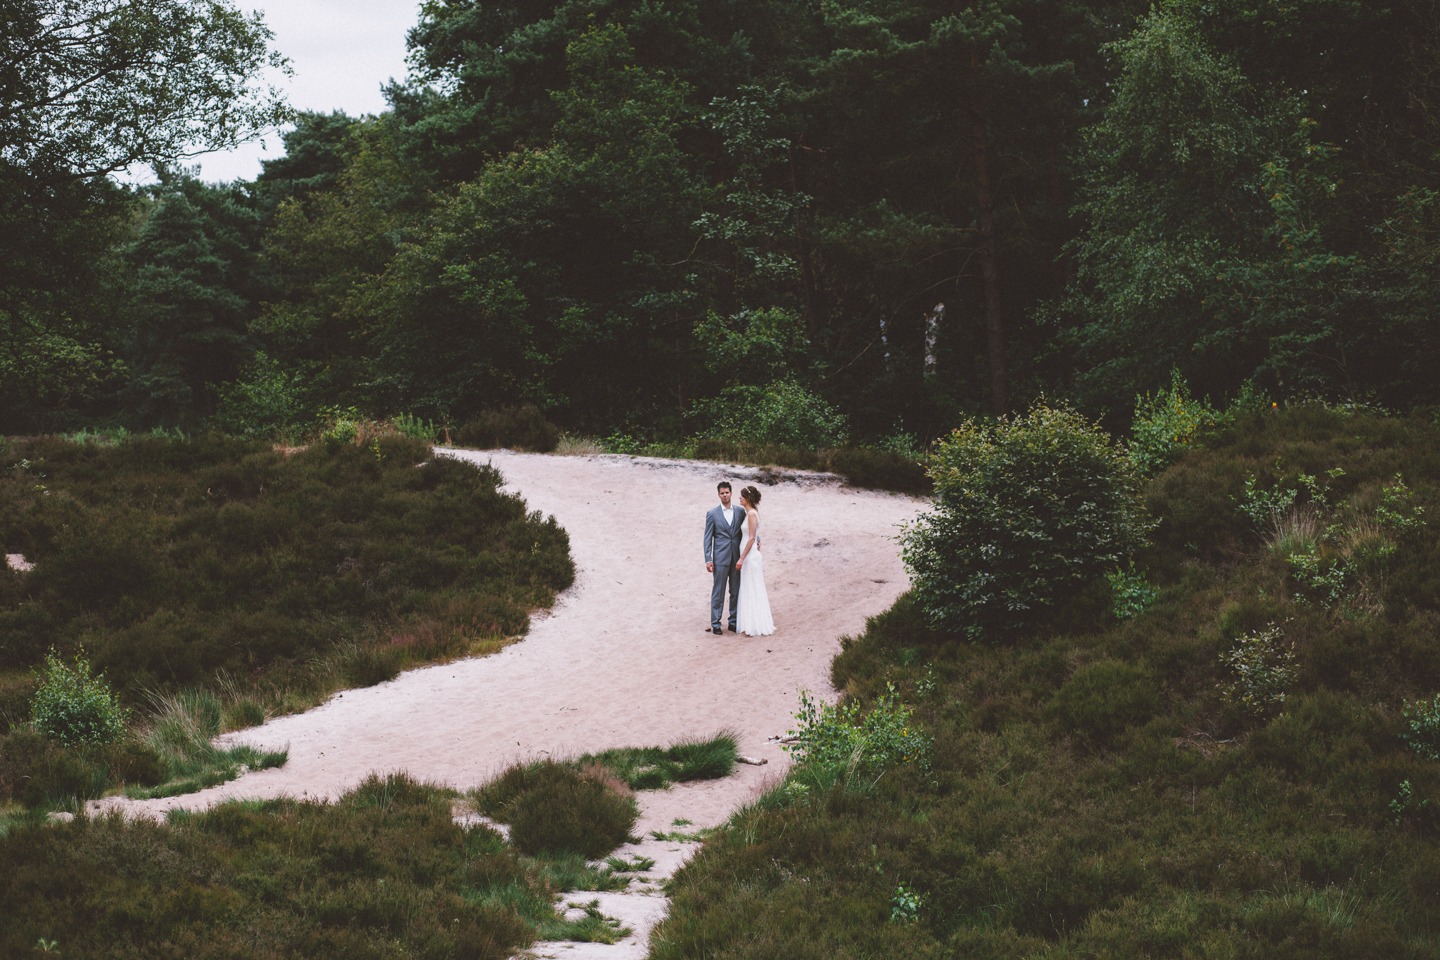 wedding-in-the-woods-inspire-styling-photo-by-oakfir-24.jpg